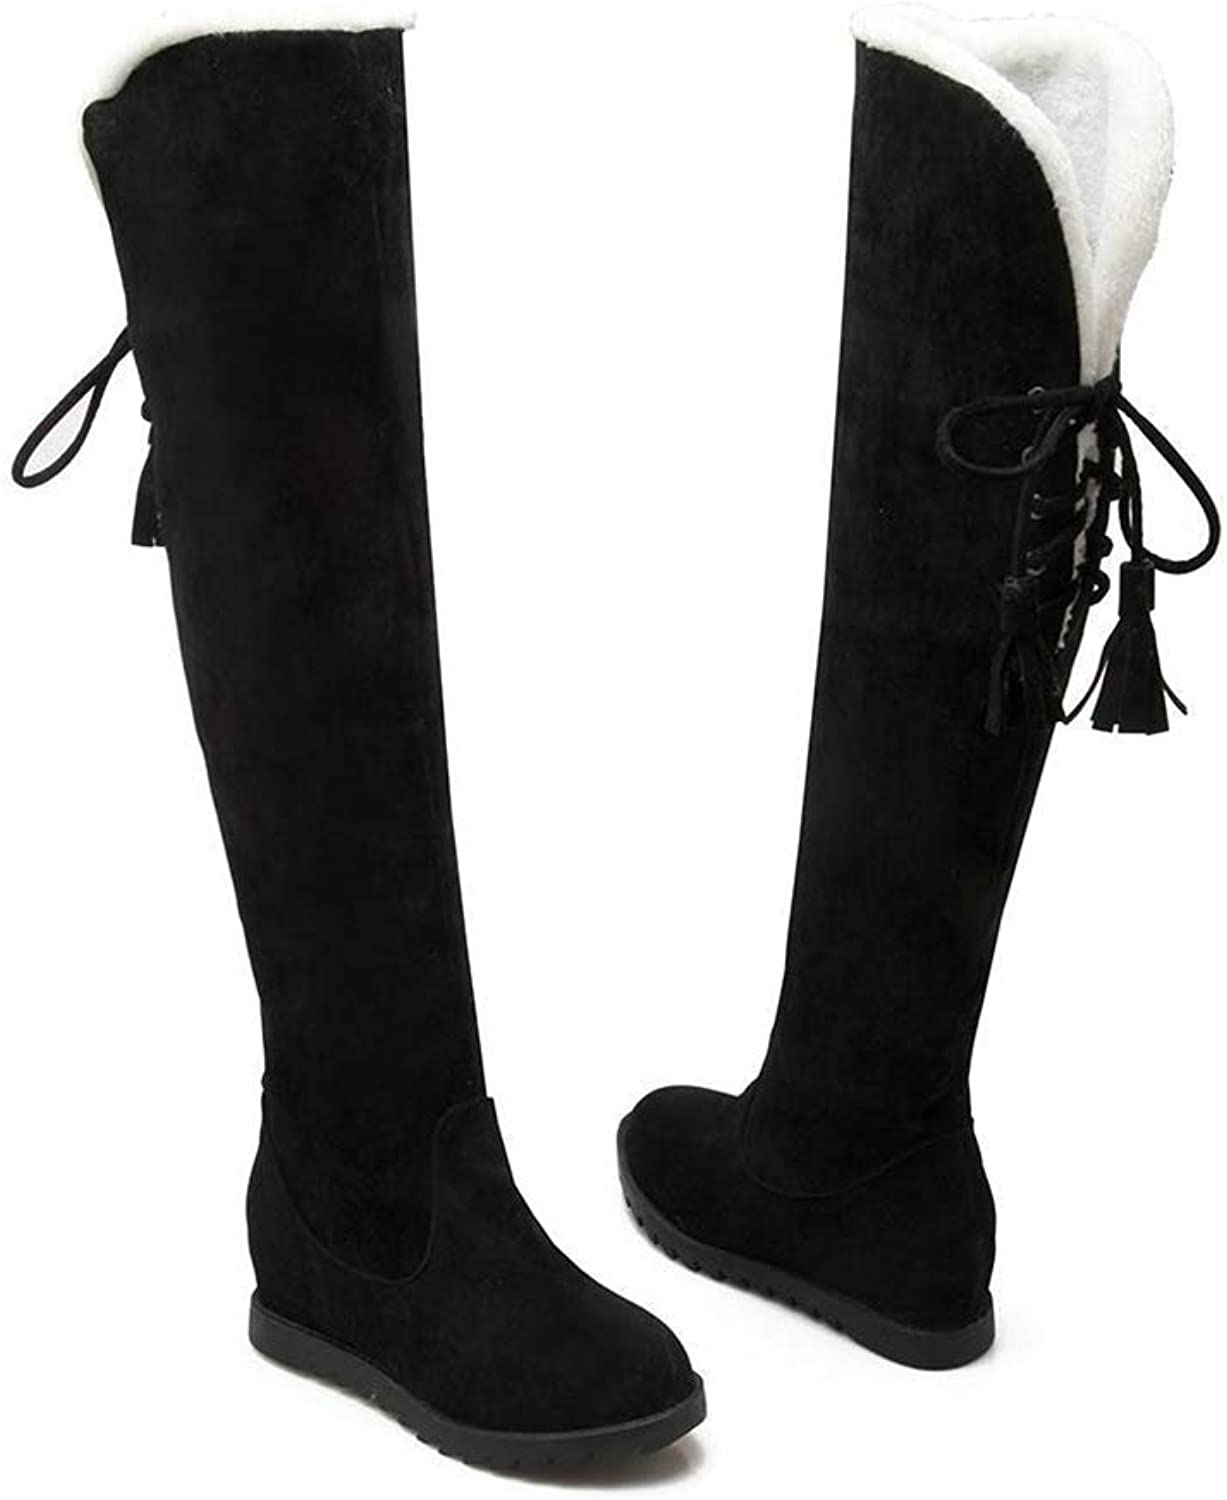 Hoxekle Women Over The Knee Boots Wedge Low Heel Lace Up Tassel Round Toe Antislip Sole Female Warm Long Snow Boots